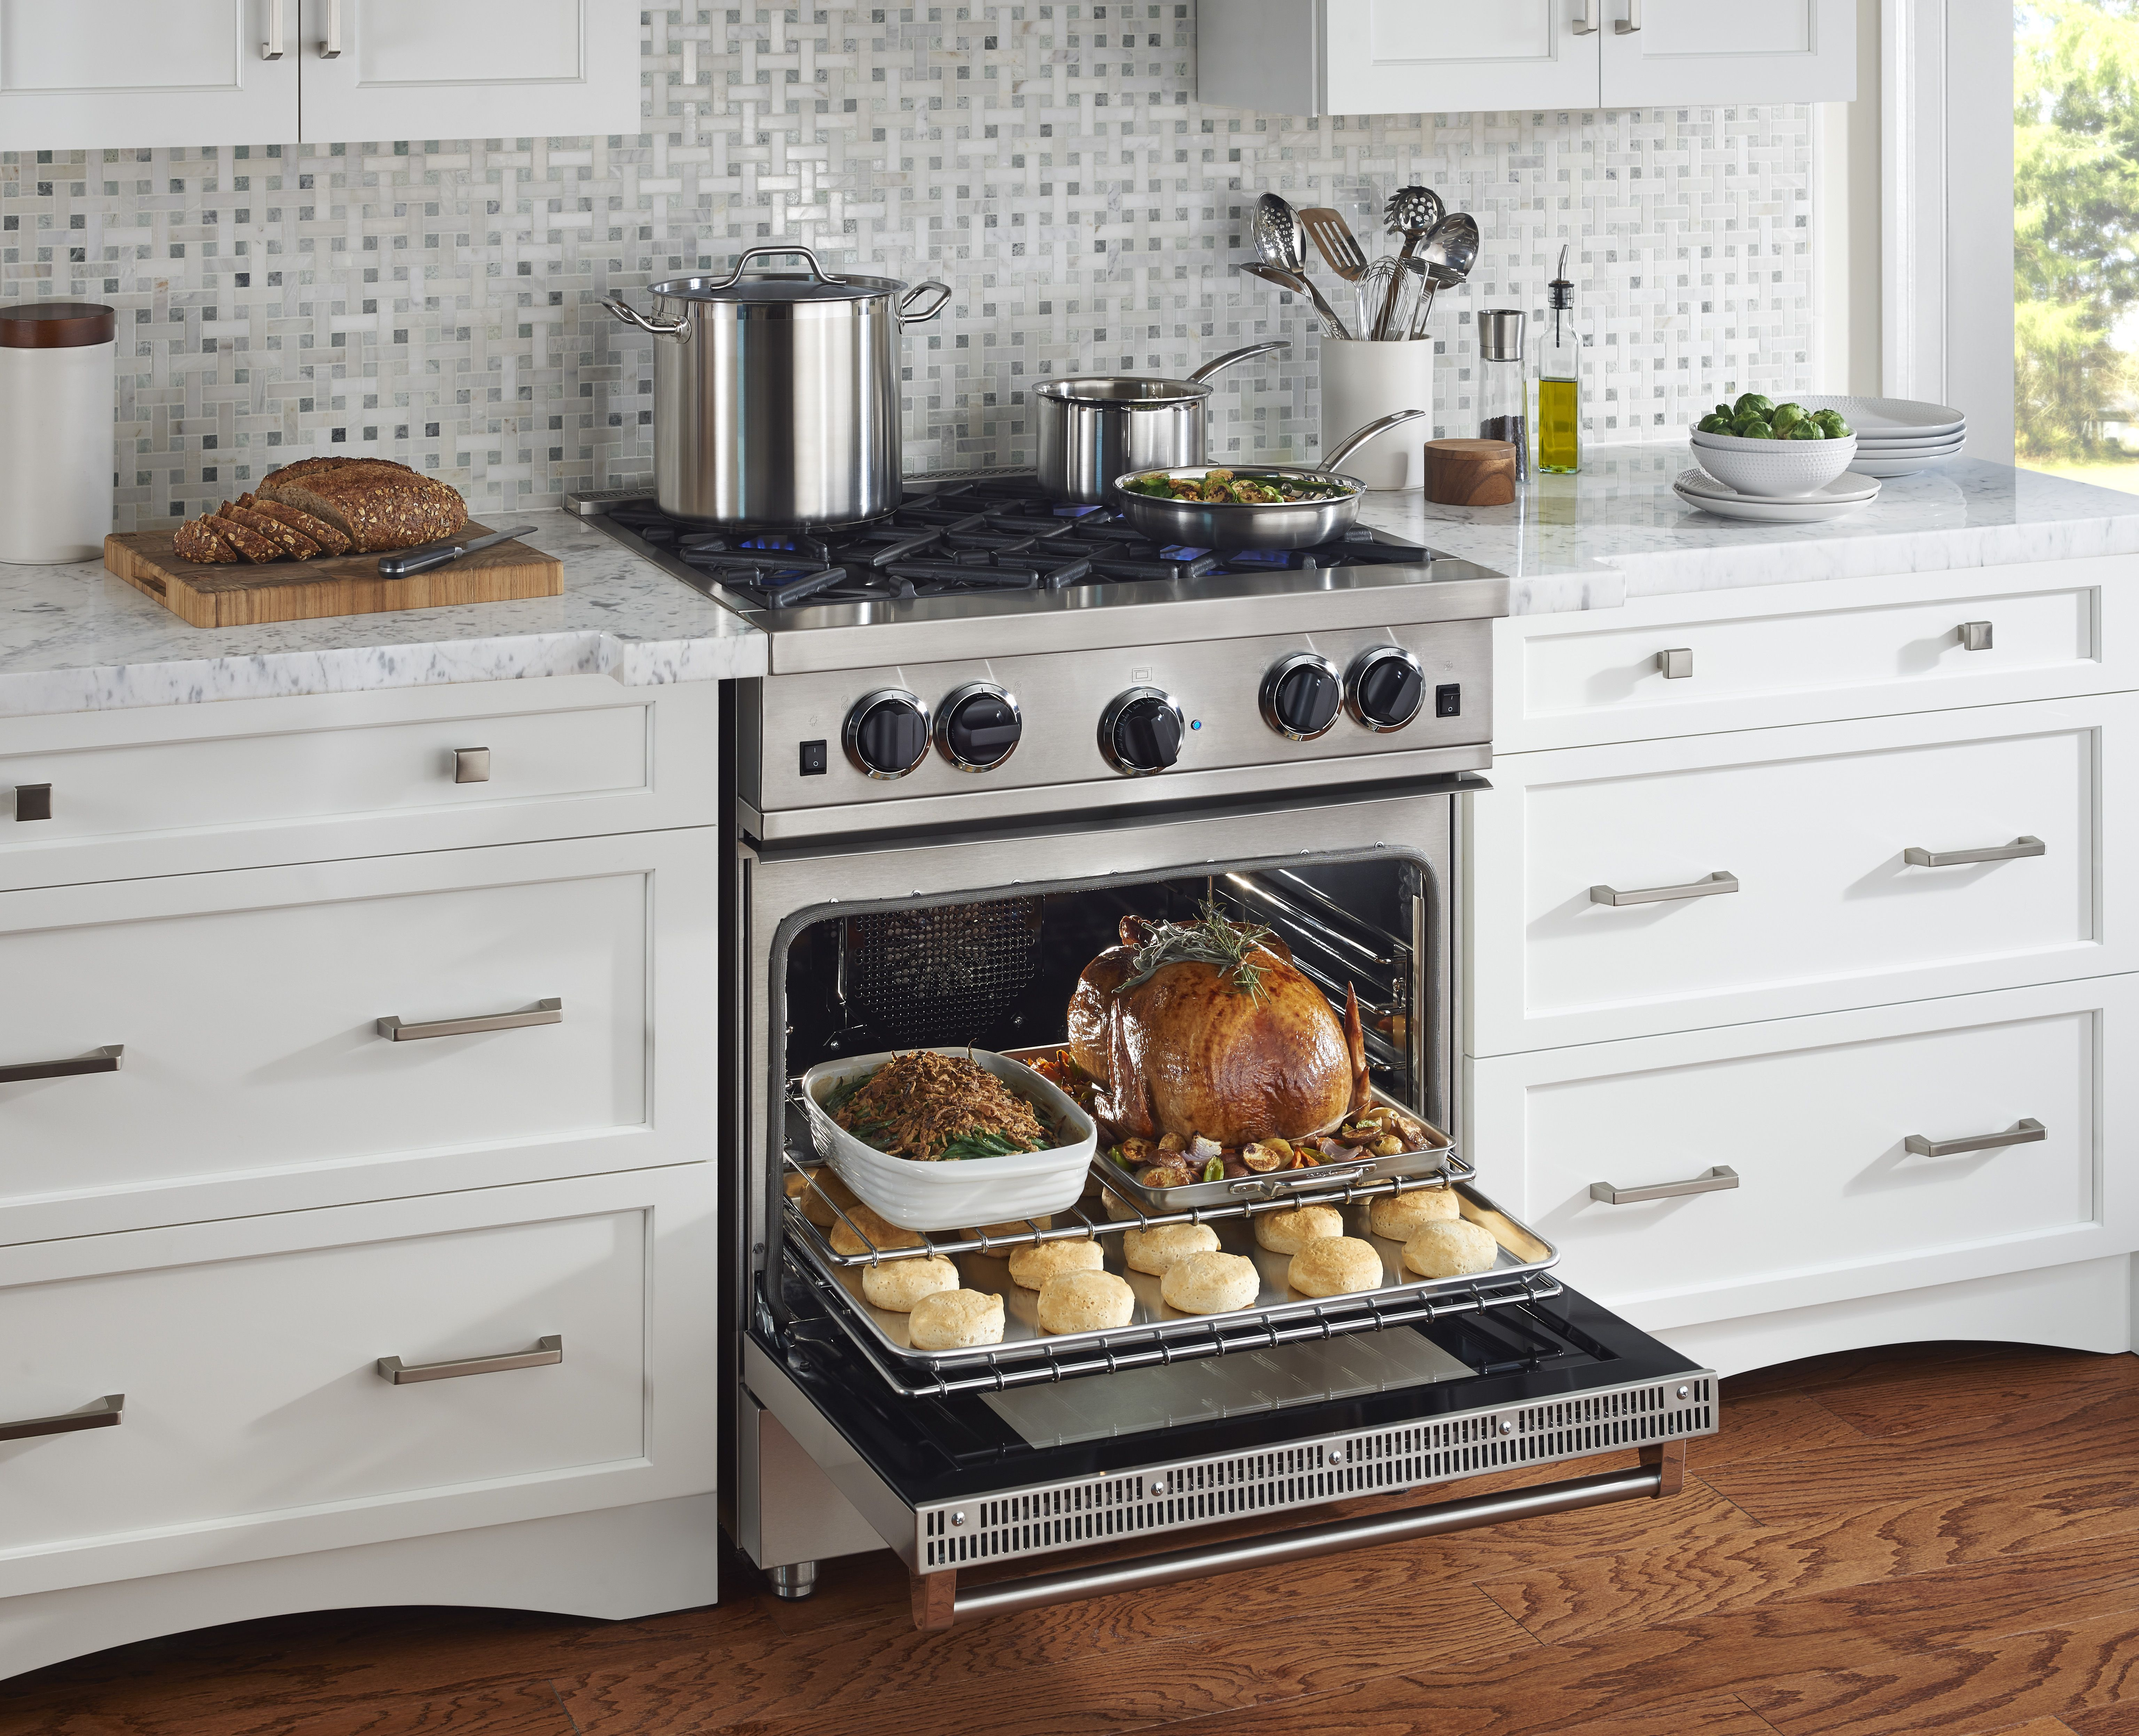 Sealed Burner Blue Star Range Contact Avenue Appliance Store In Edmonton Alberta To Learn More About Our Home And Kitchen Applian Kitchen Design Kitchen Home